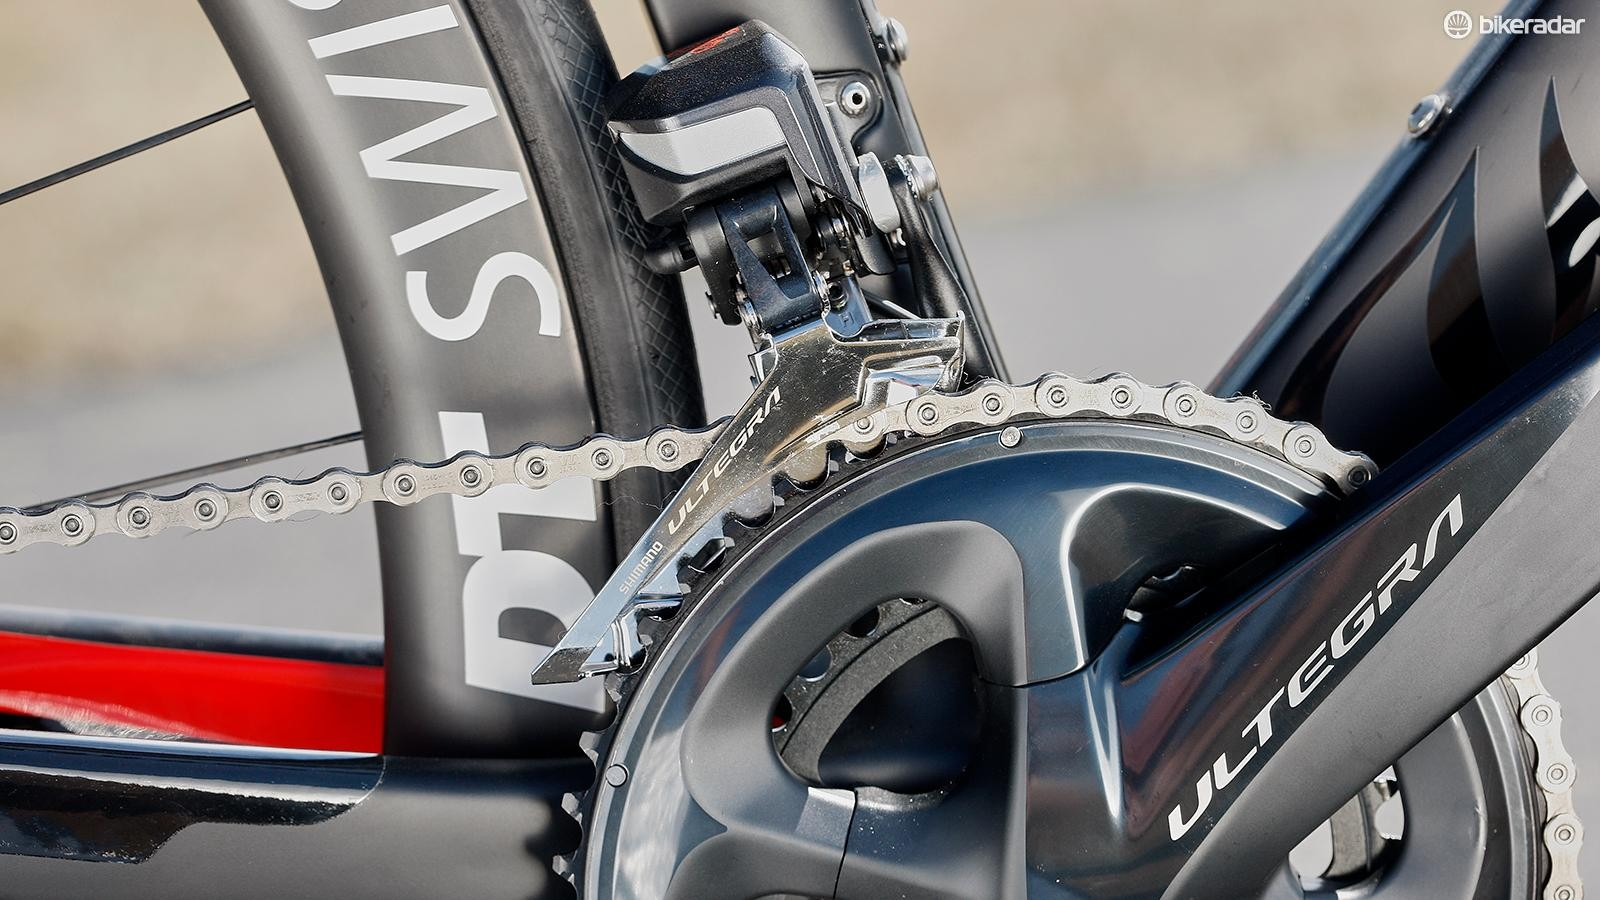 Shimano Ultegra gearing is enough to meet the majority of your riding needs